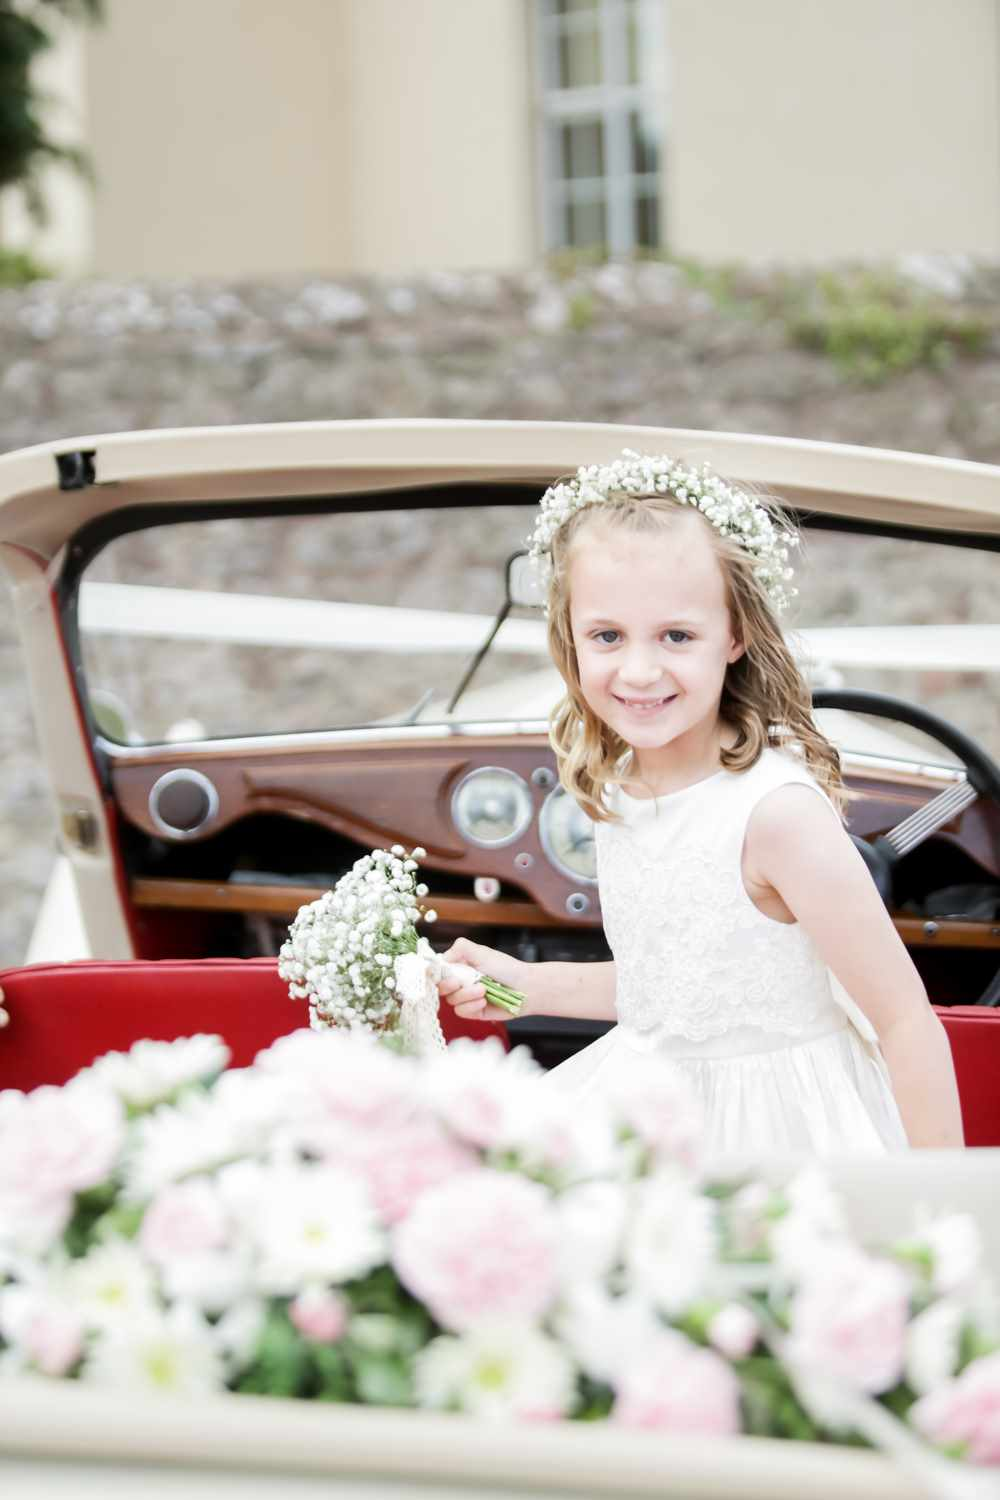 Somesret-wedding-photography-Quantock-lakes-thomas-frost-photography--51